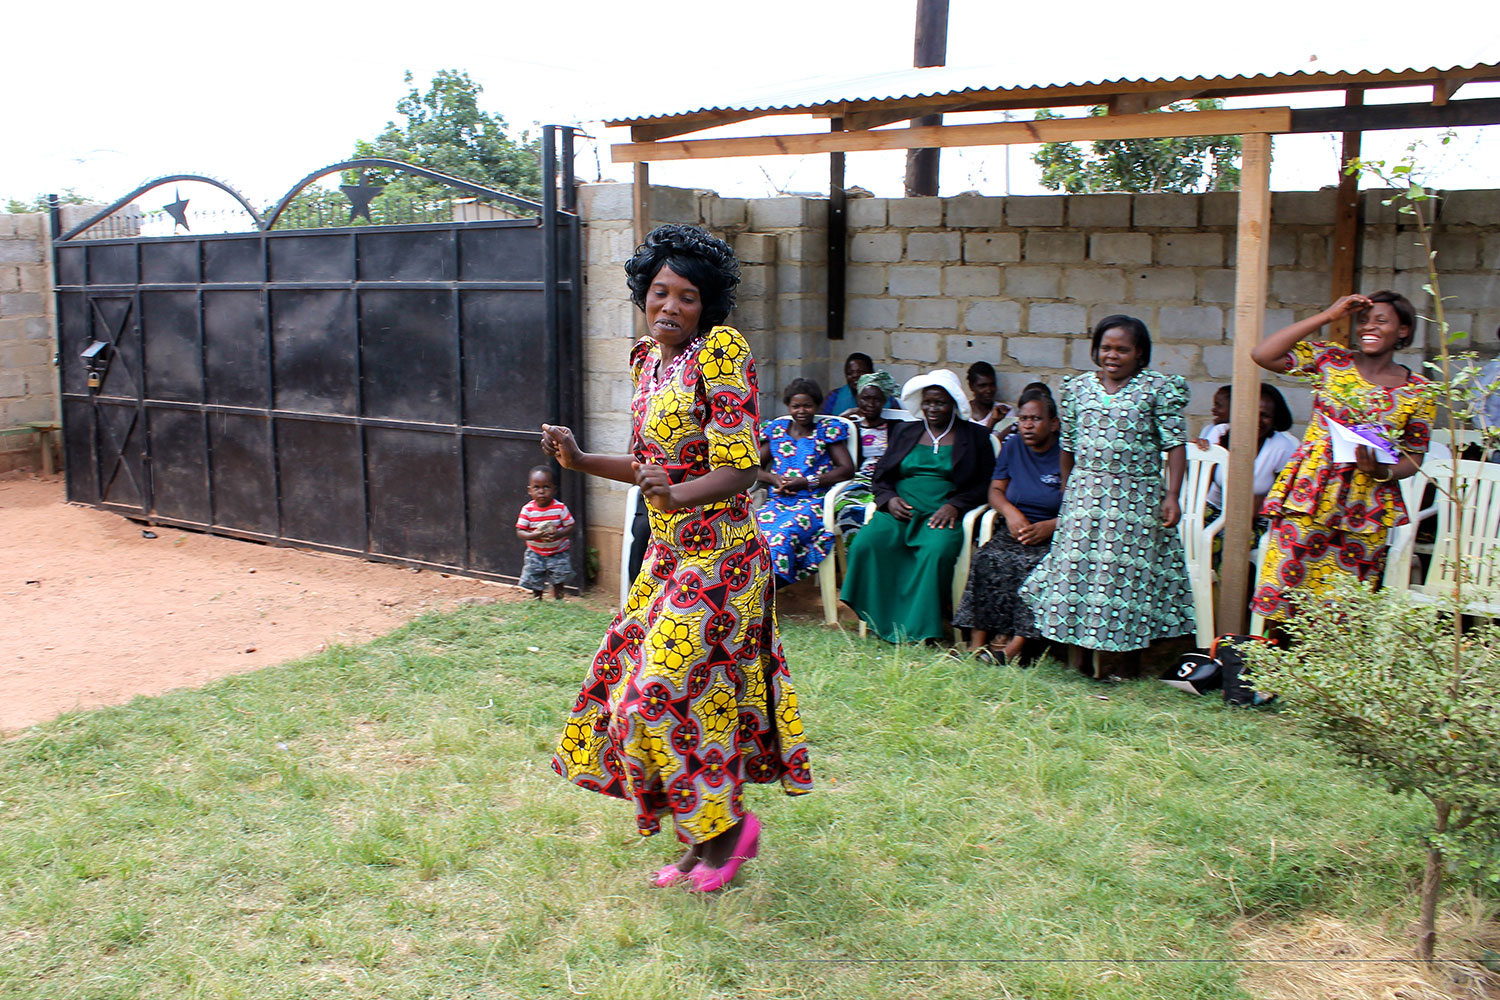 """When it comes time for the handing out of the diplomas women run (or dance, like Vene here) all the way to the front in celebration! Elina, CiH In-Country Director, shares """"This is just the start. This is just a piece of paper. YOU have the skill!"""""""